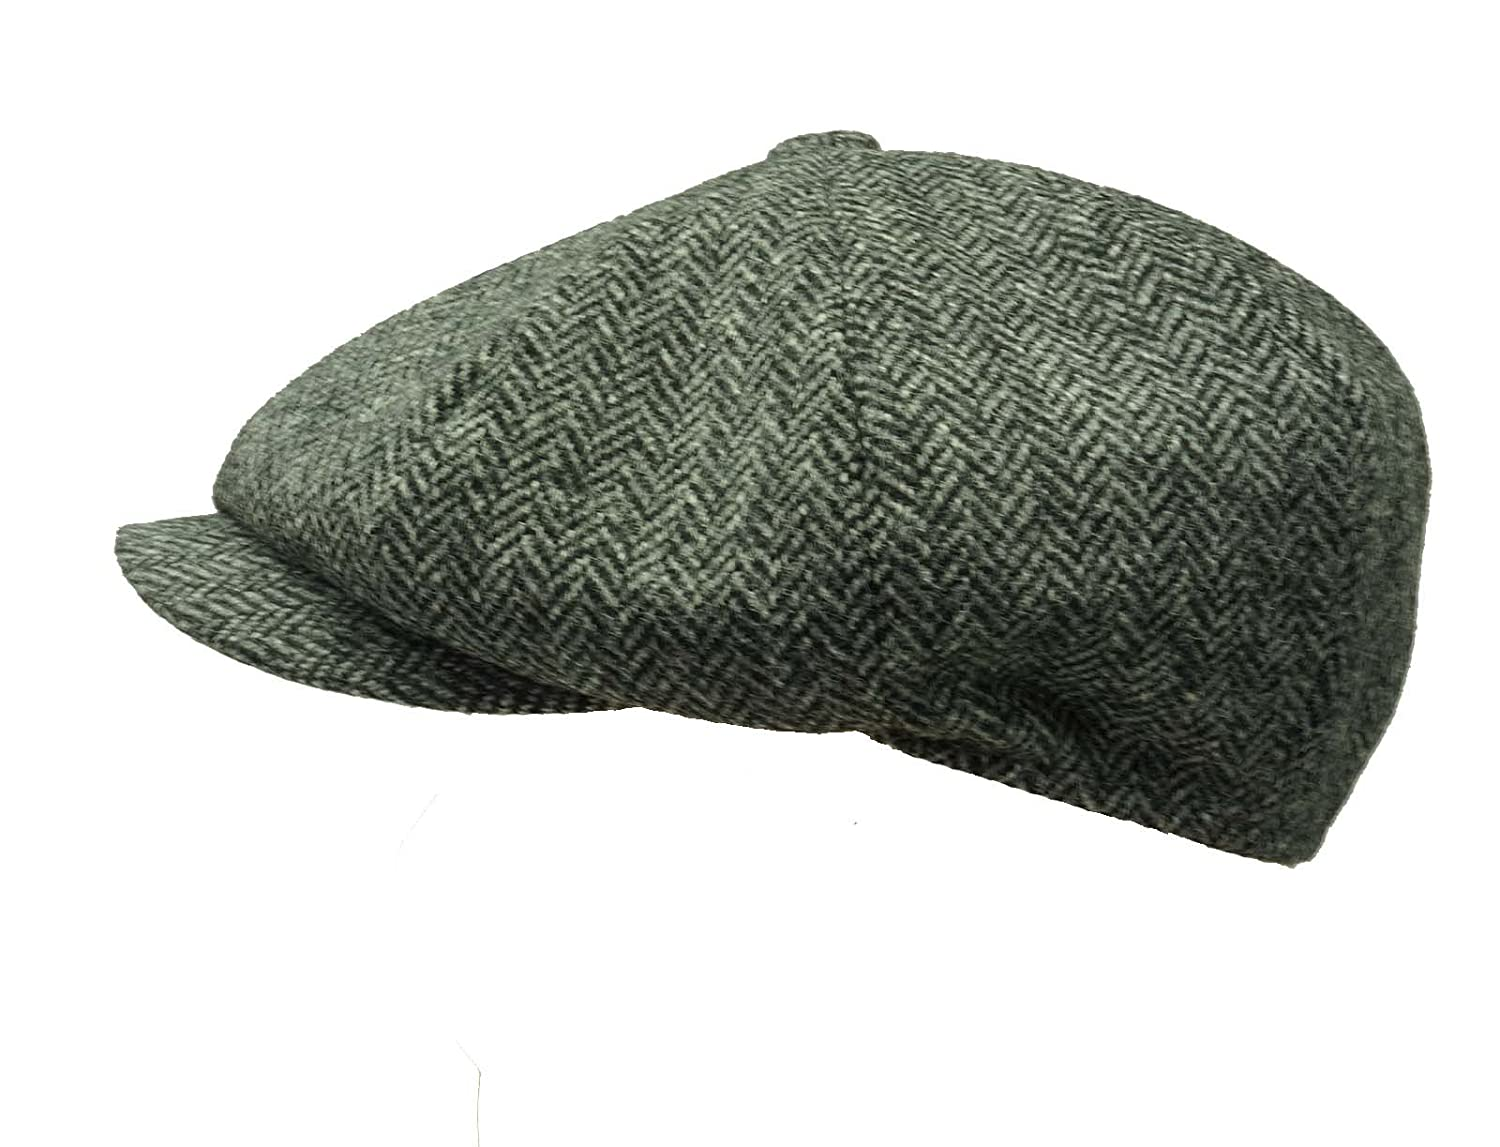 Earland Brothers Failsworth Peaky Shelby Blinders Style Cap Newsboy Cap Shelby Cap -Grey Herringbone 1088